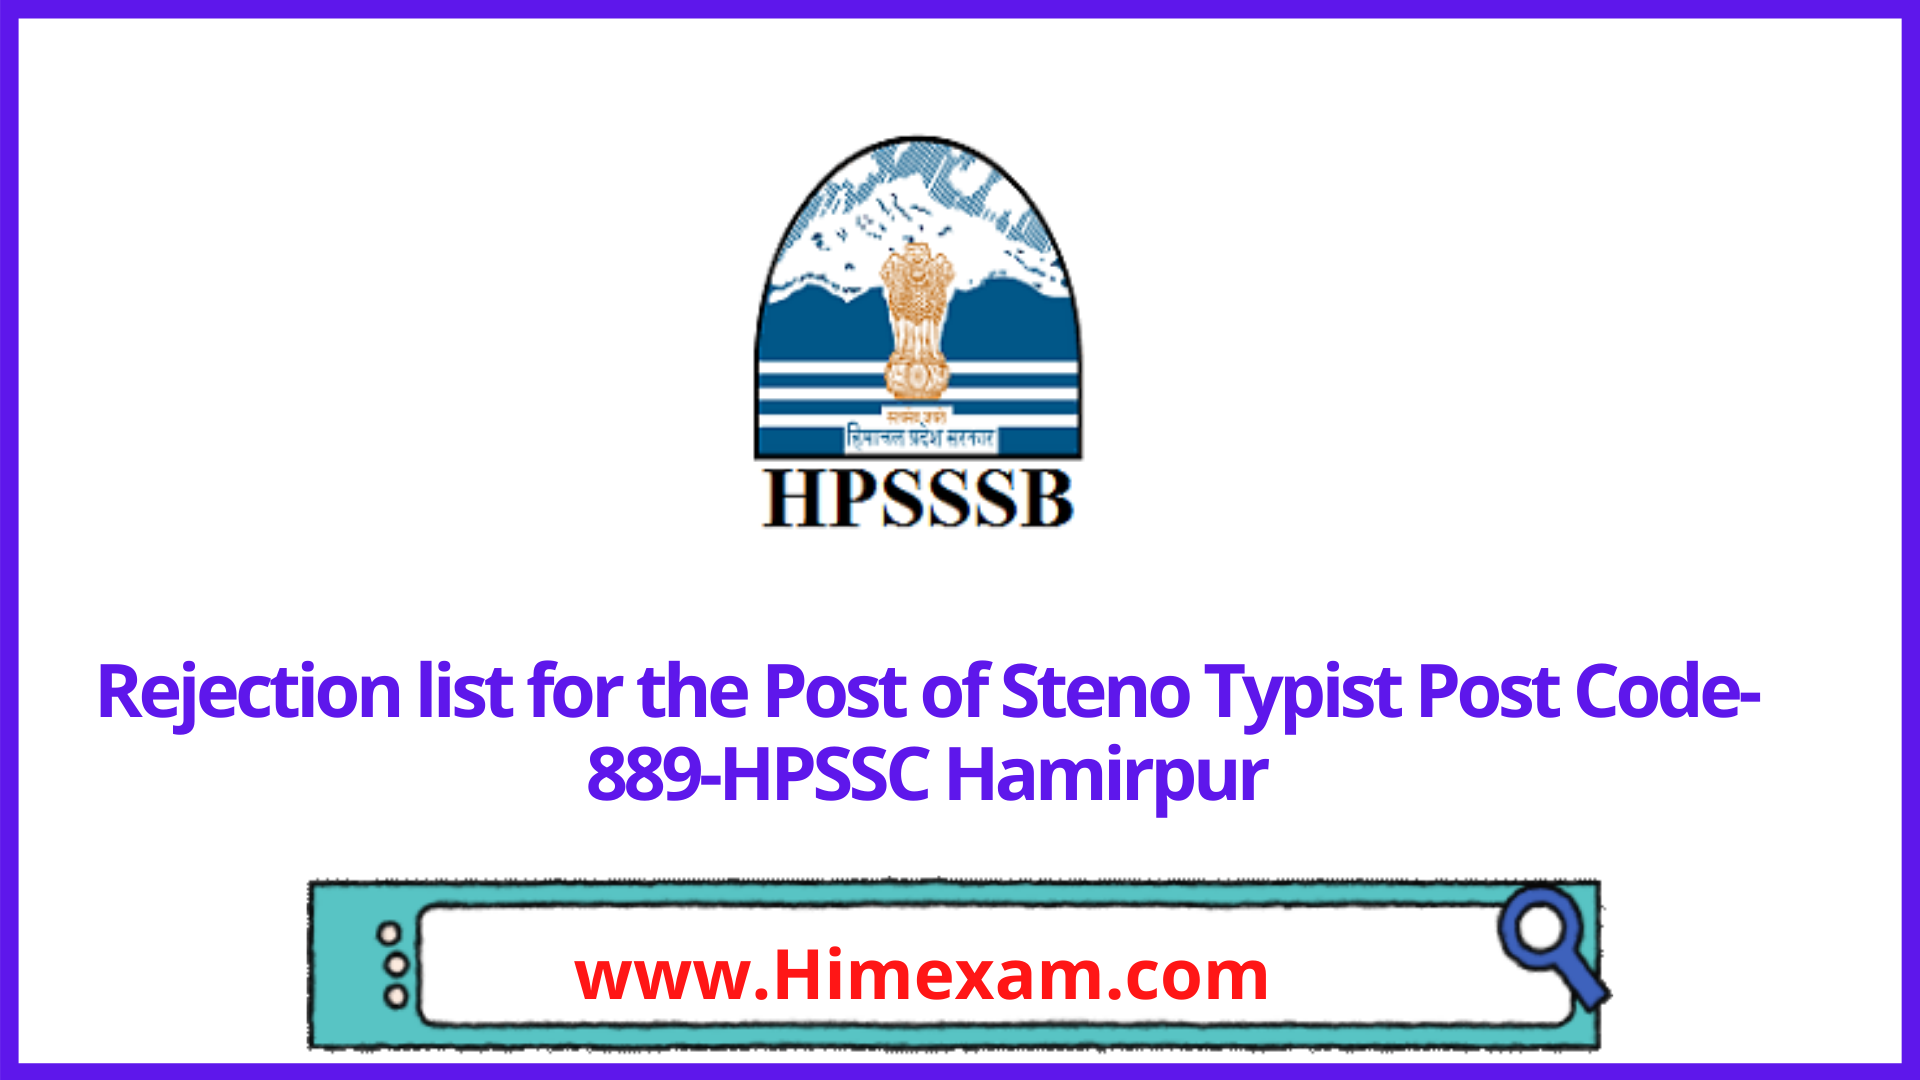 Rejection list for the Post of Steno Typist Post Code-889-HPSSC Hamirpur